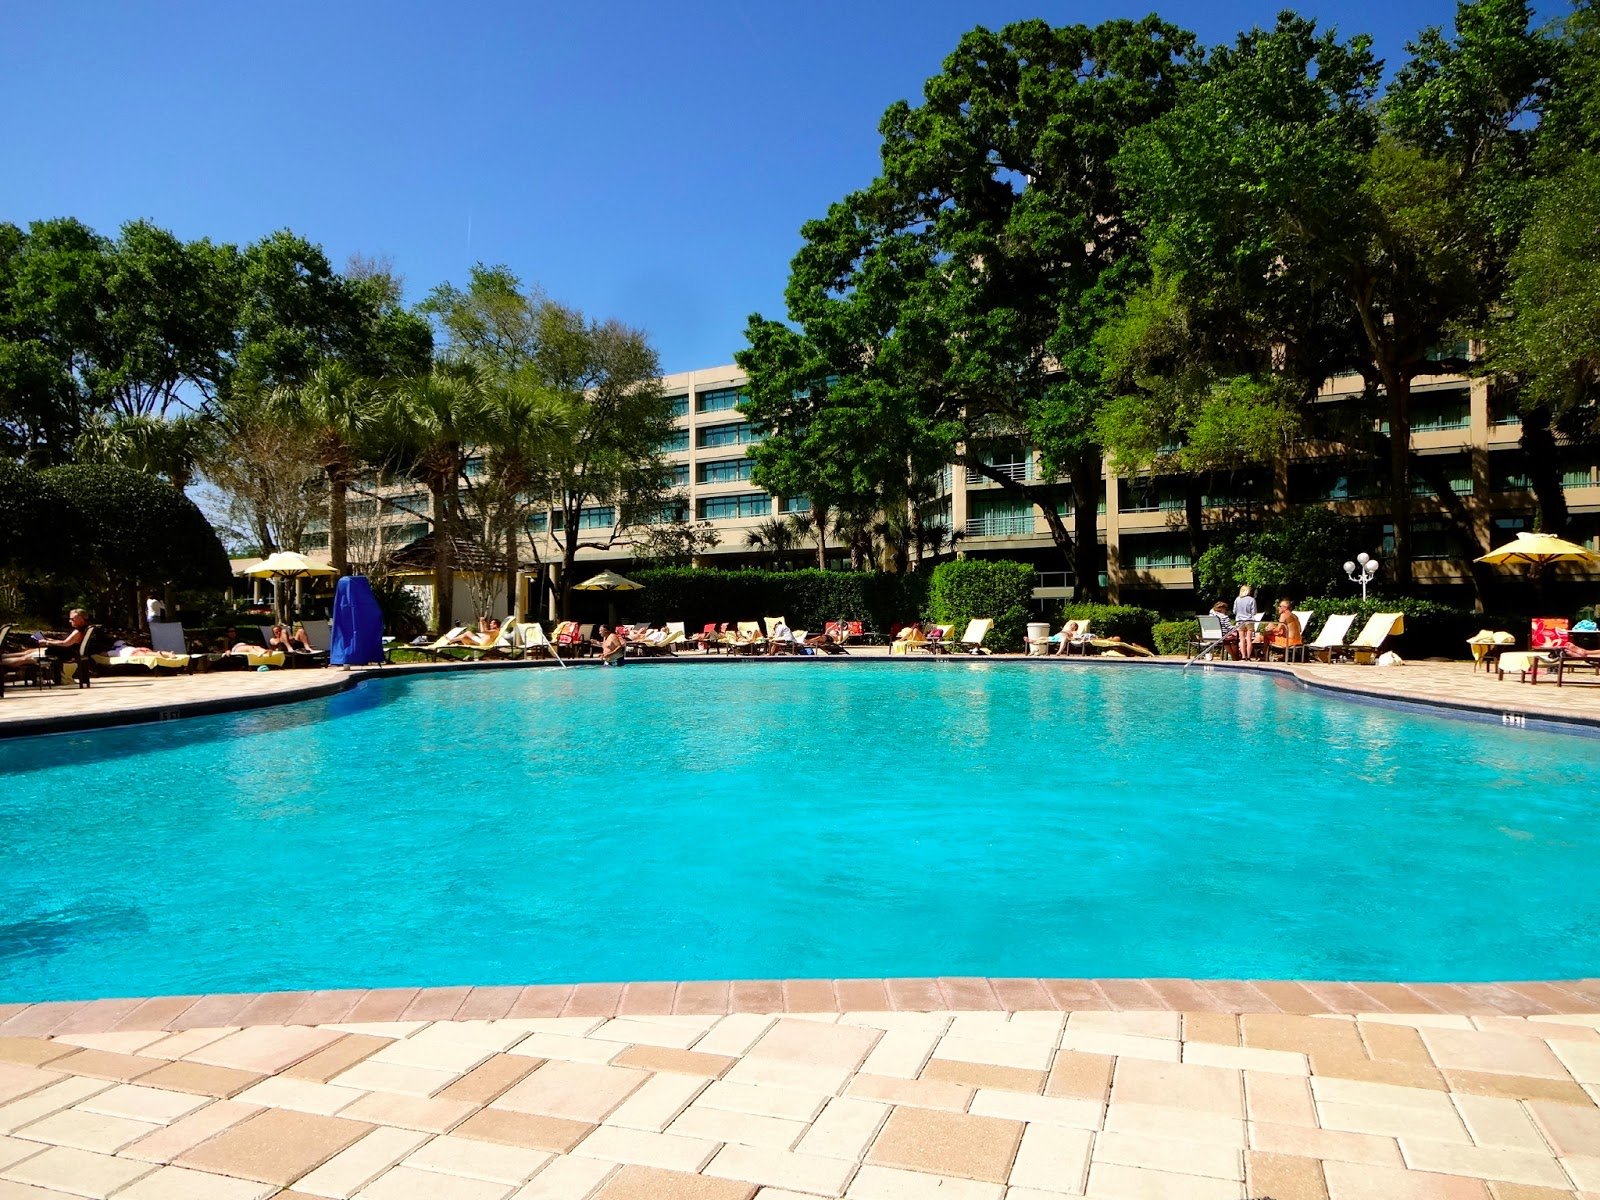 Sawgrass Marriott Resort Pool